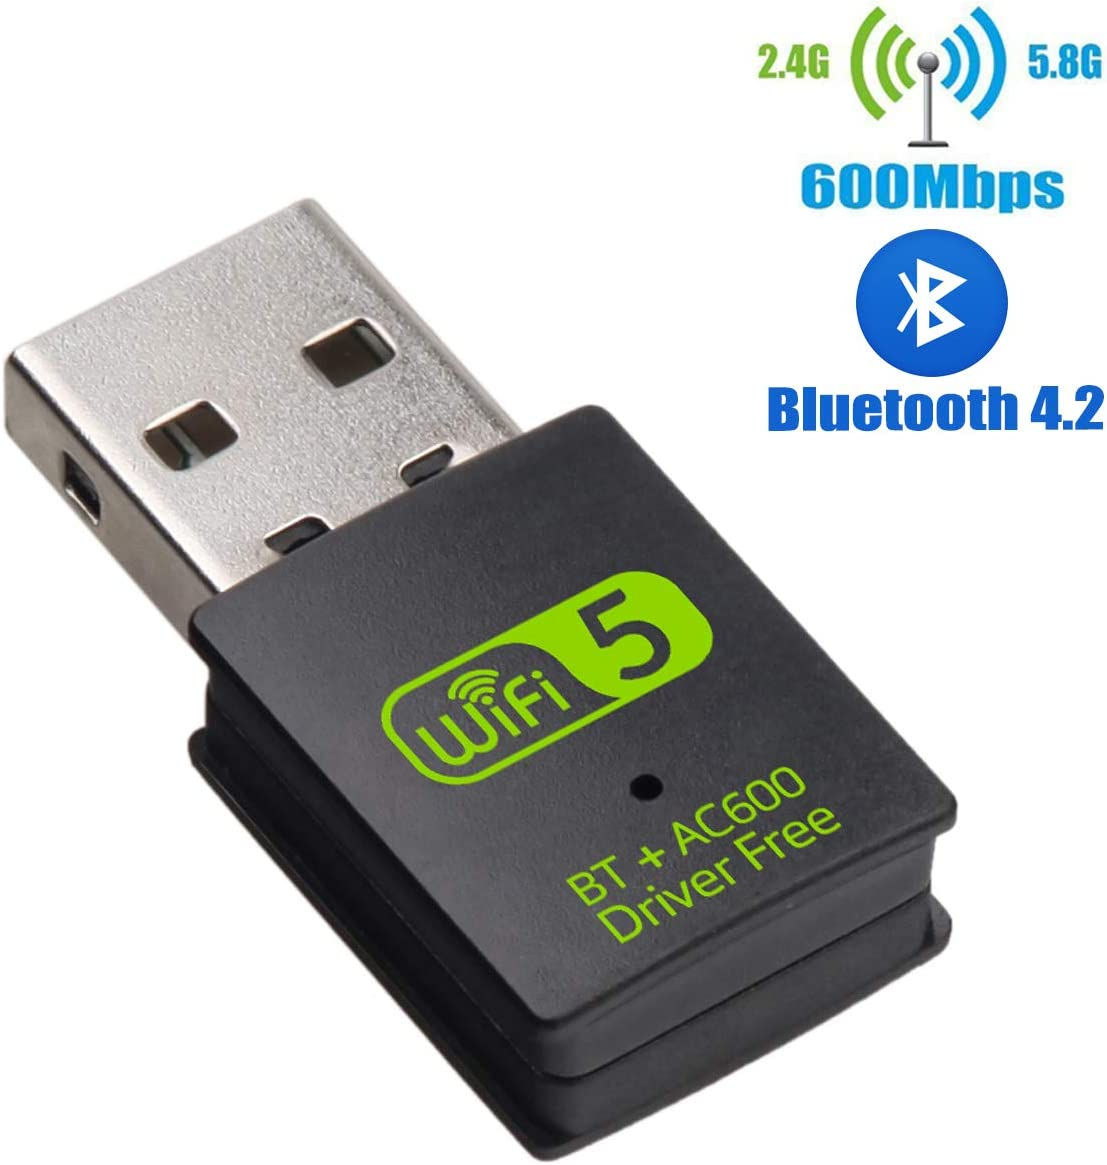 USB WiFi Bluetooth Adapter, 600Mbps Dual Band 2.4/5Ghz Wireless Network External Receiver, Mini WiFi Dongle for PC/Laptop/Desktop